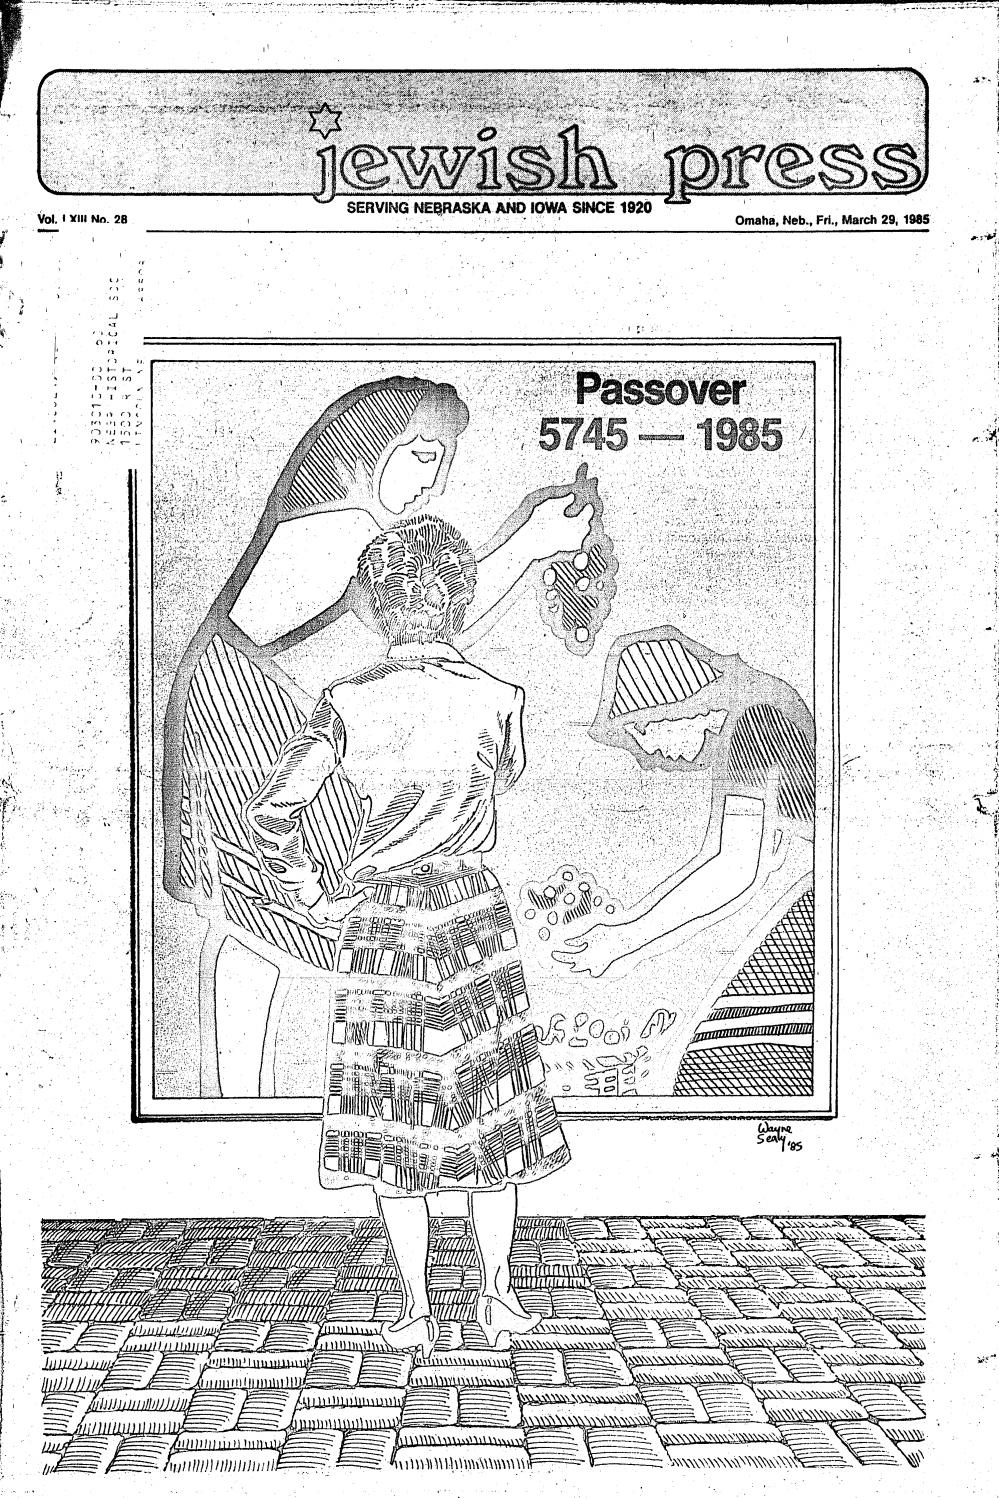 March 29, 1985: Passover Edition by Jewish Press - issuu